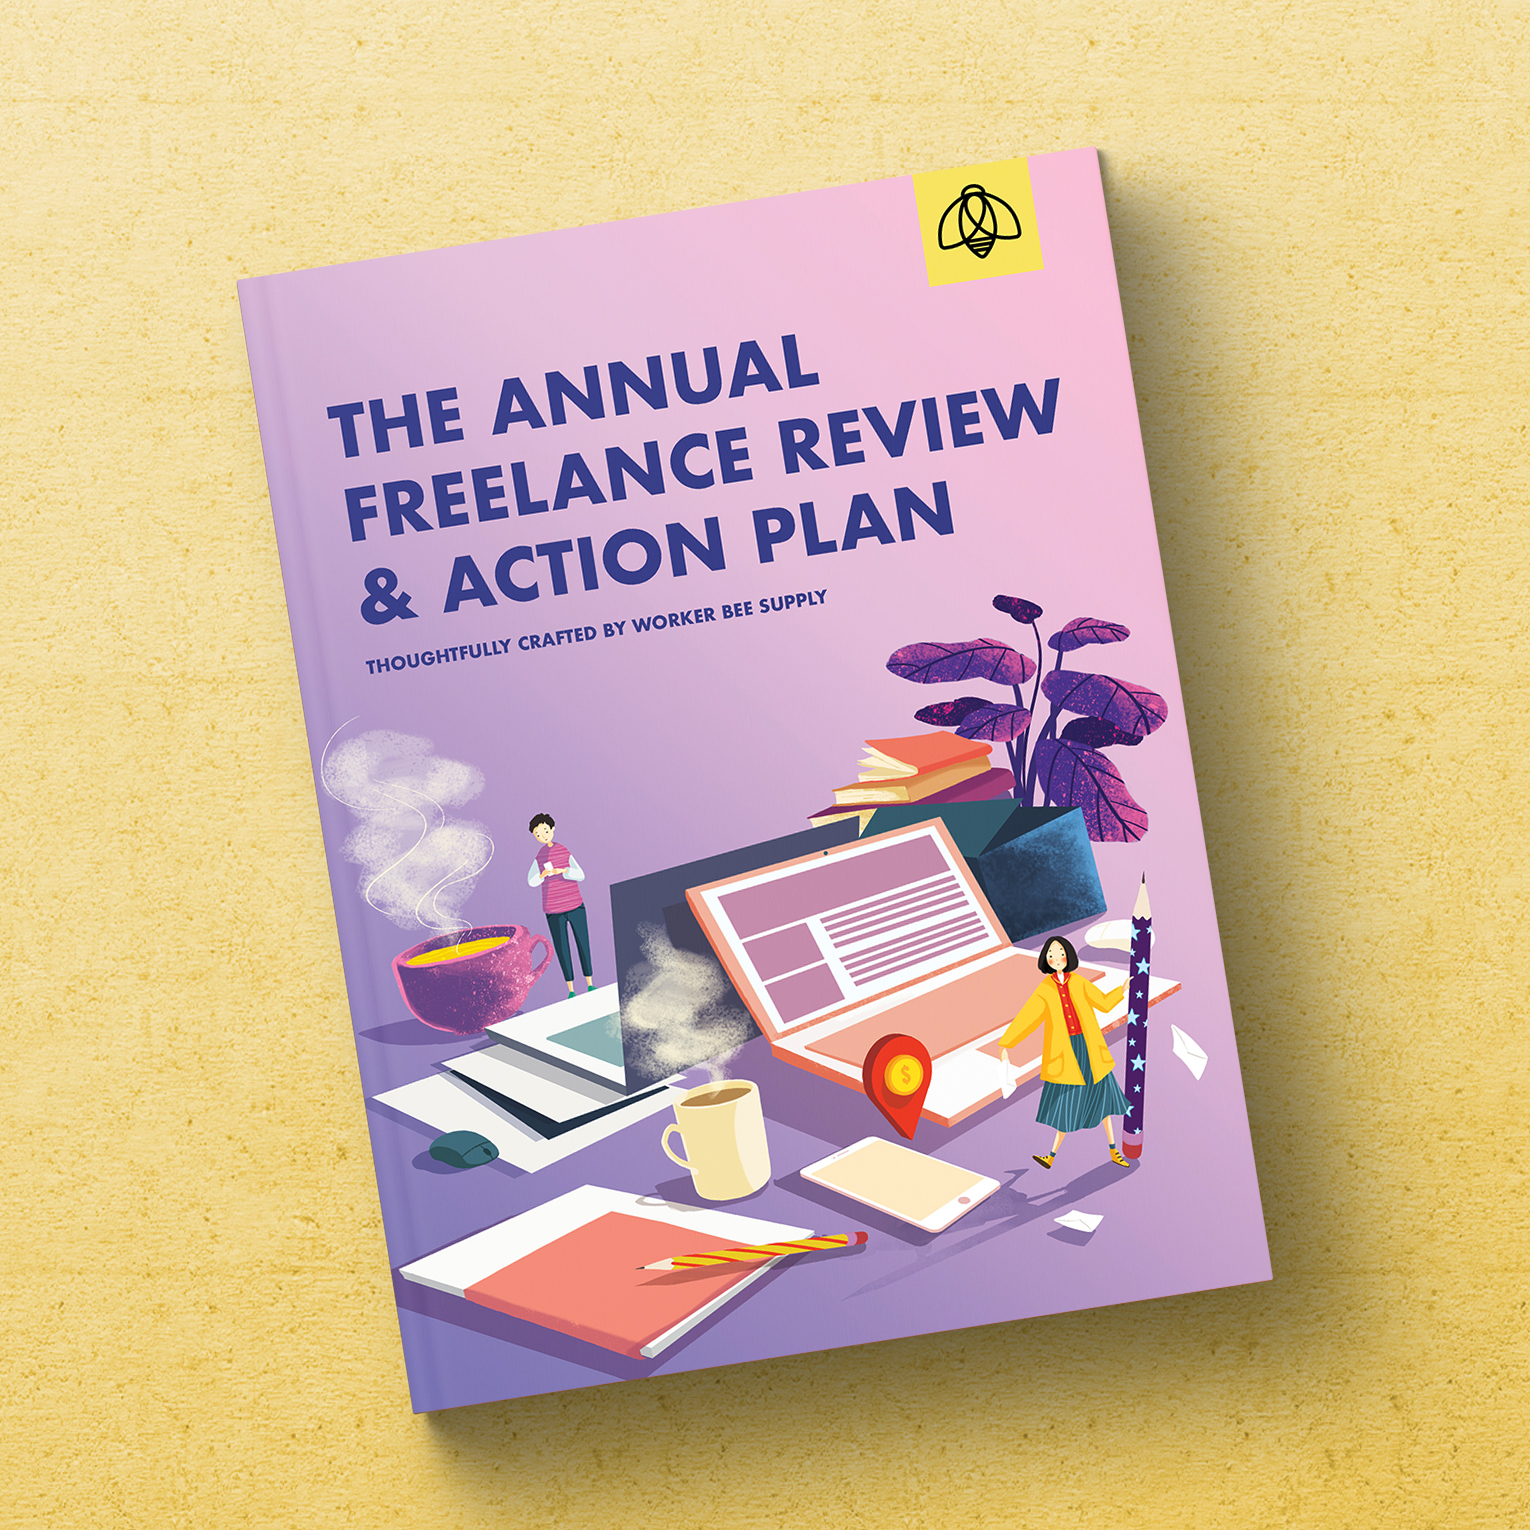 Freelance Action Plan e-book by Worker Bee Supply with Tips, Strategies, & Printable Worksheets